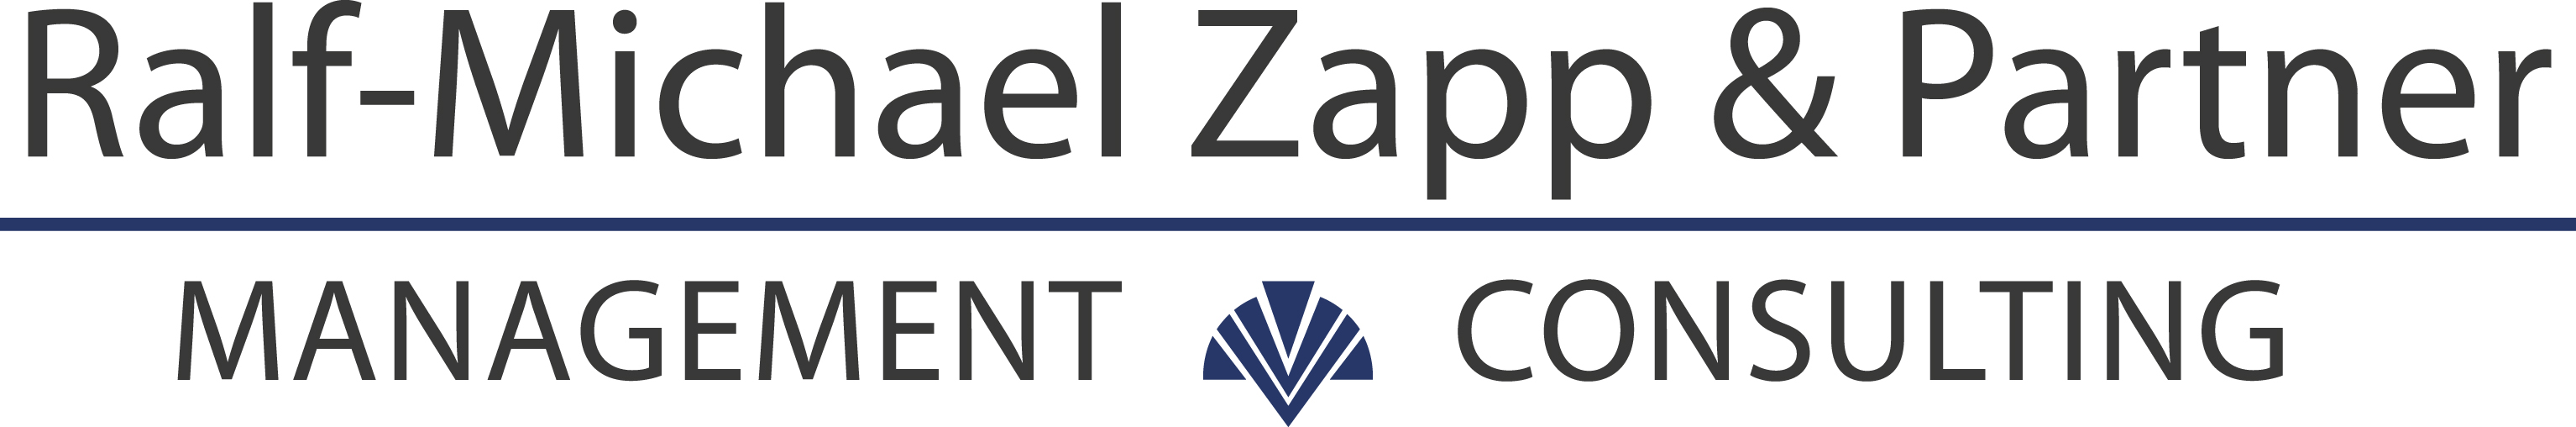 ZAPP-Consulting Logo 4c.indd